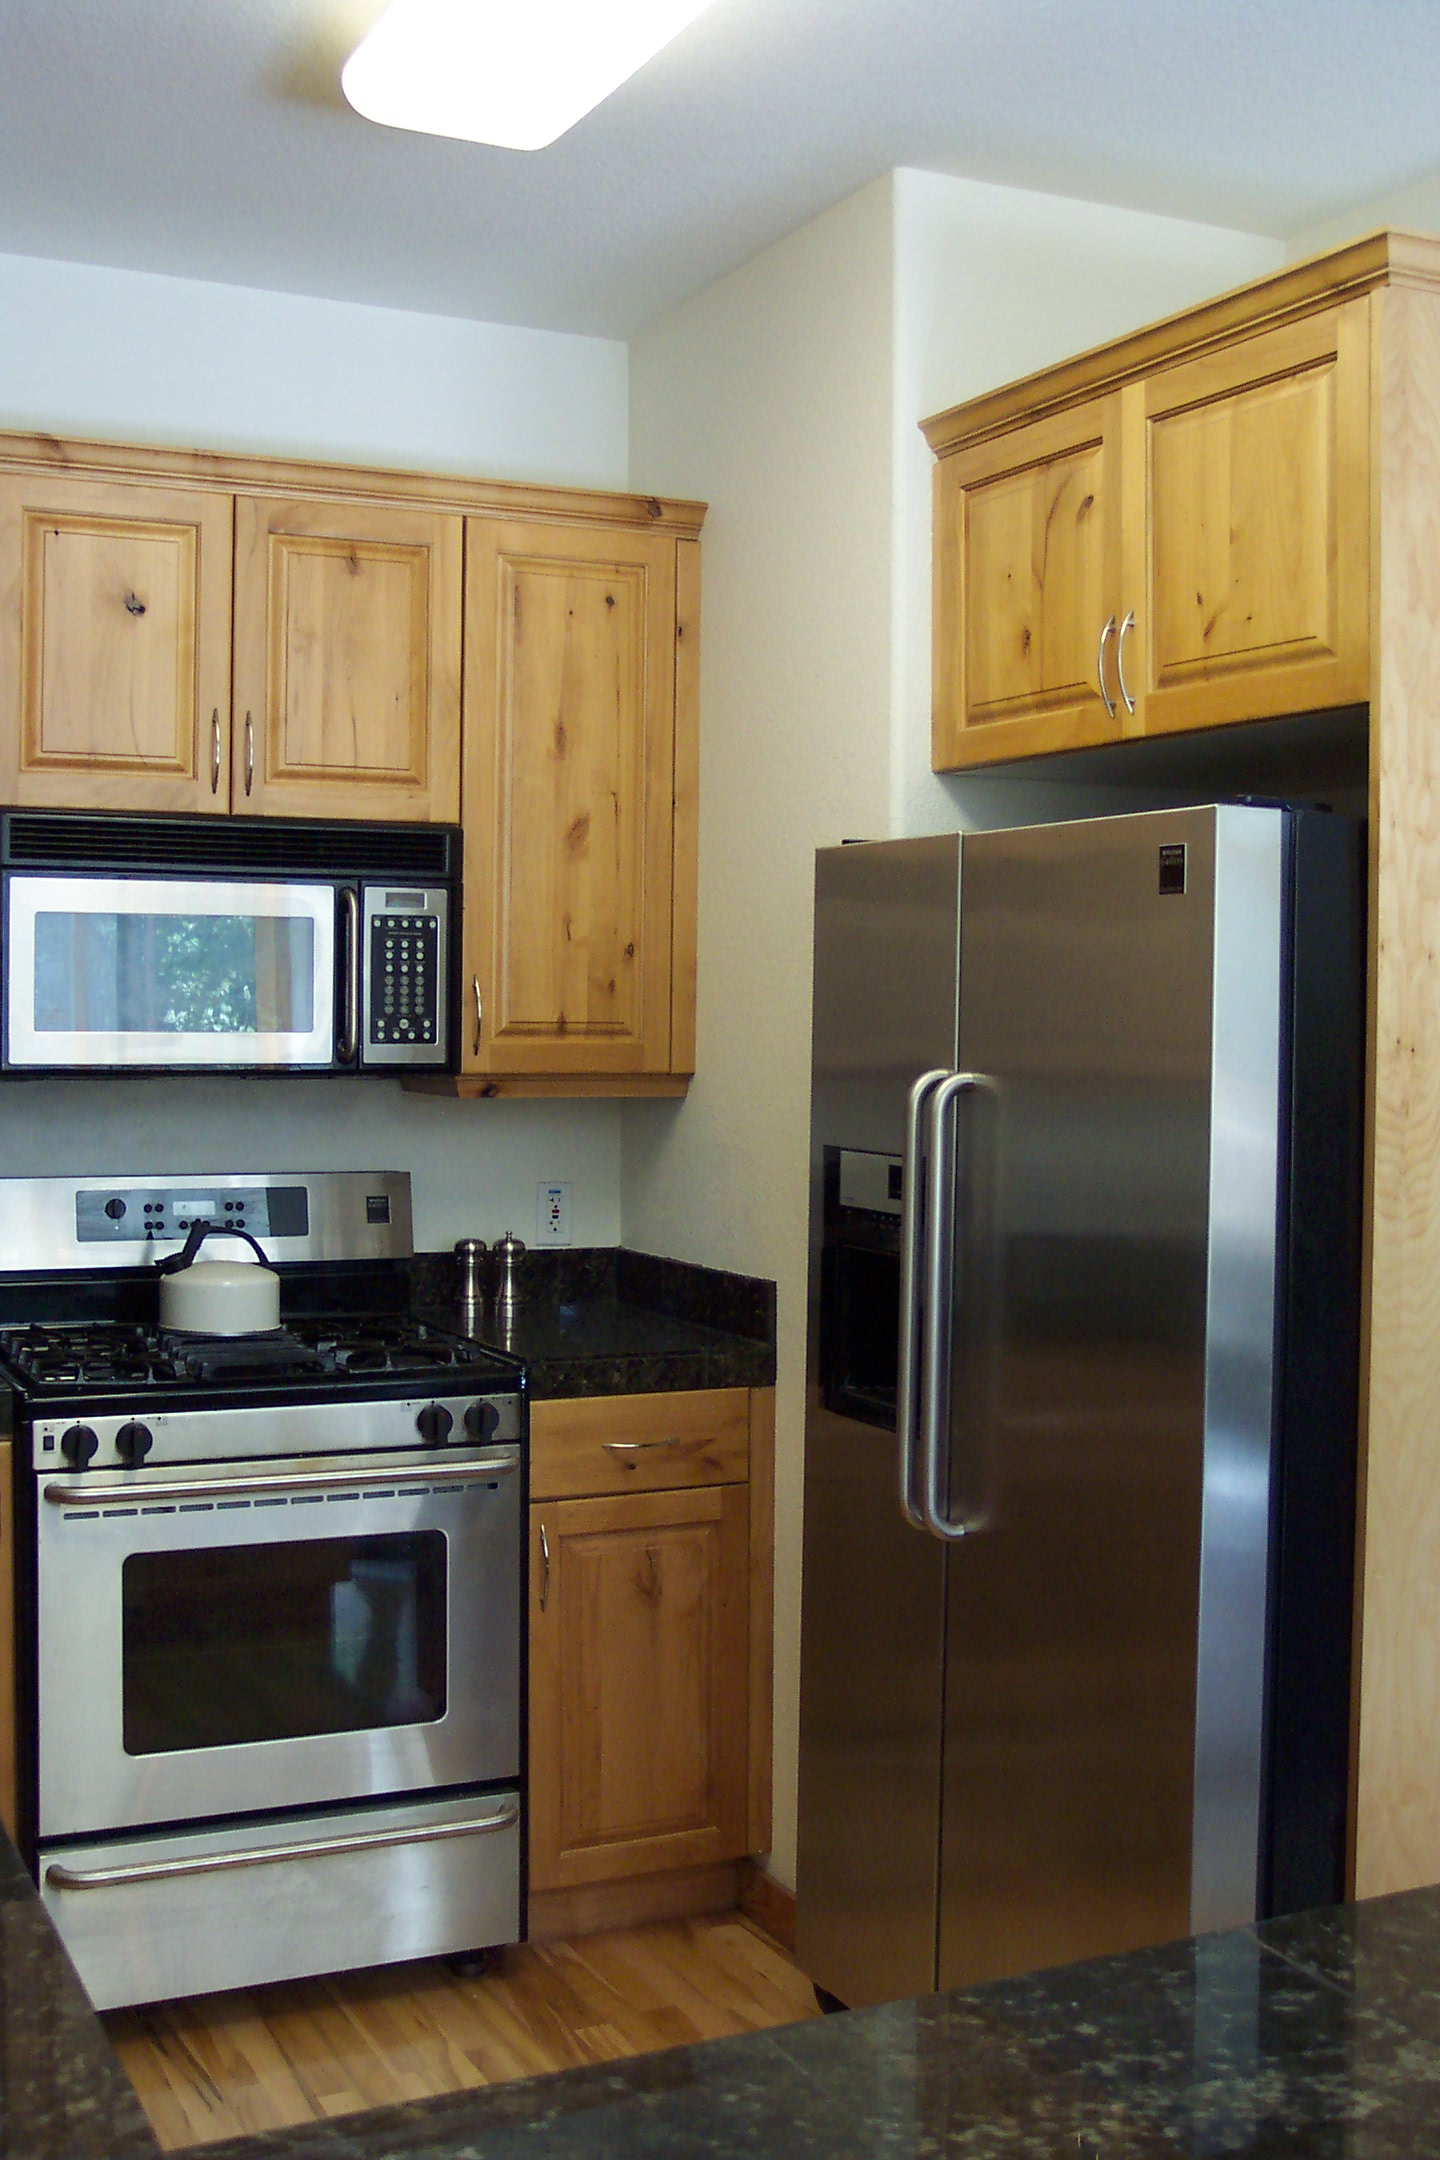 File ponderosa kitchen jpg wikimedia commons for What is new in kitchen design